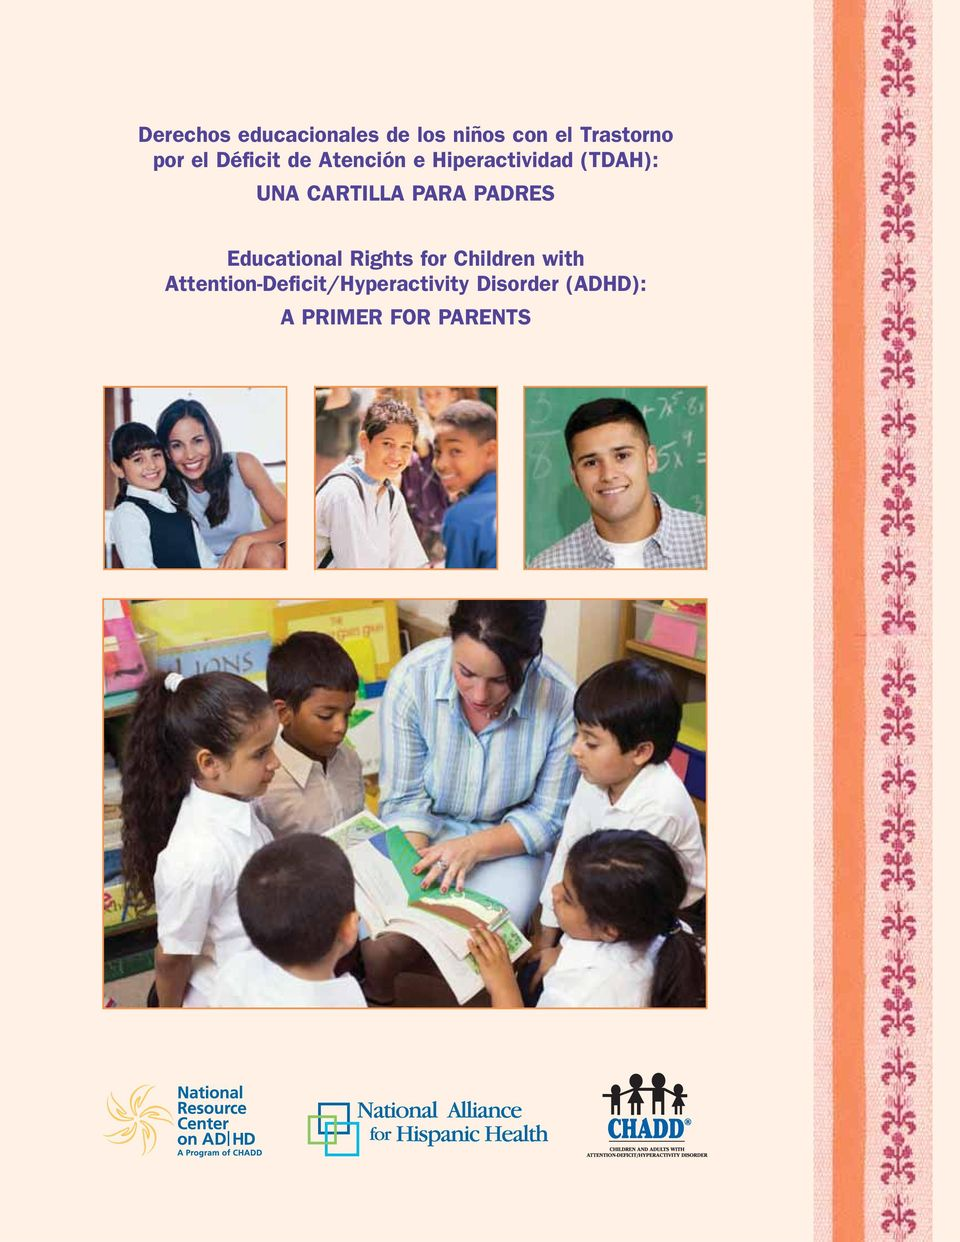 CARTILLA PARA PADRES Educational Rights for Children with